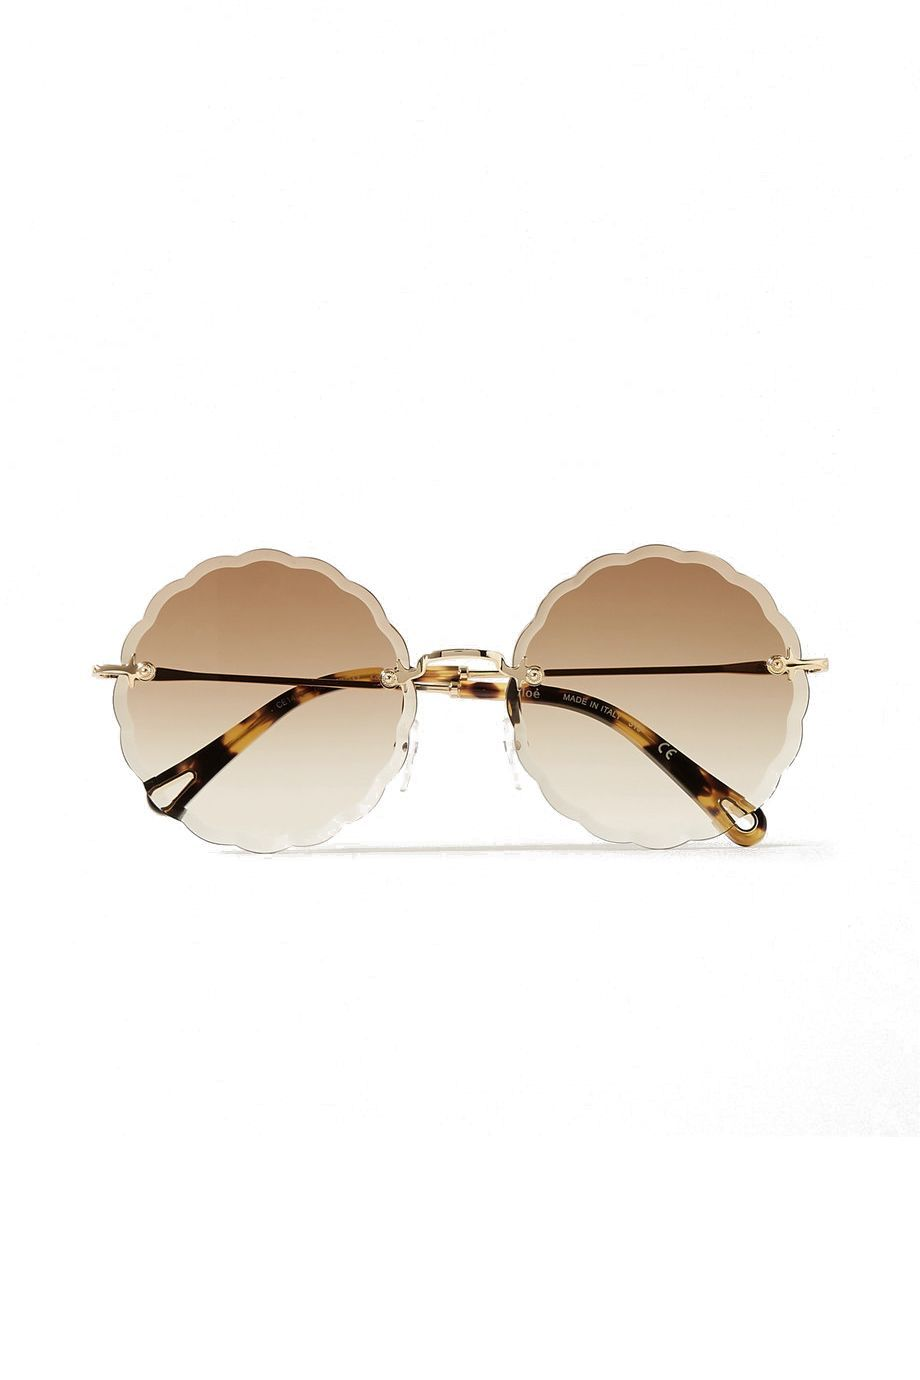 Girls Oversized Fashion Sunglasses with Silver Decorative Detail on the Side